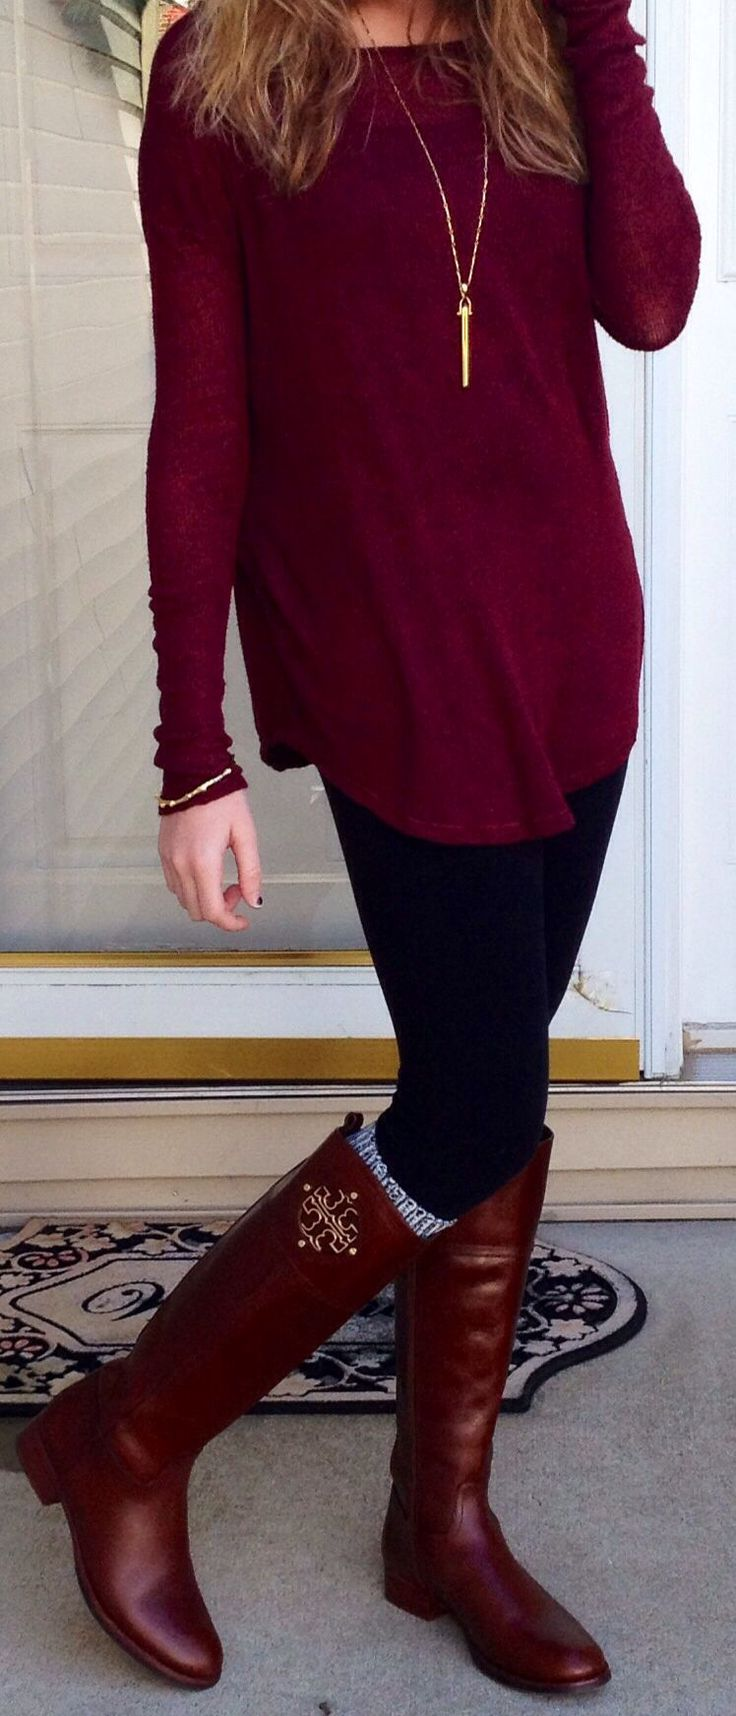 Comfy OUTFIT for fall/winter